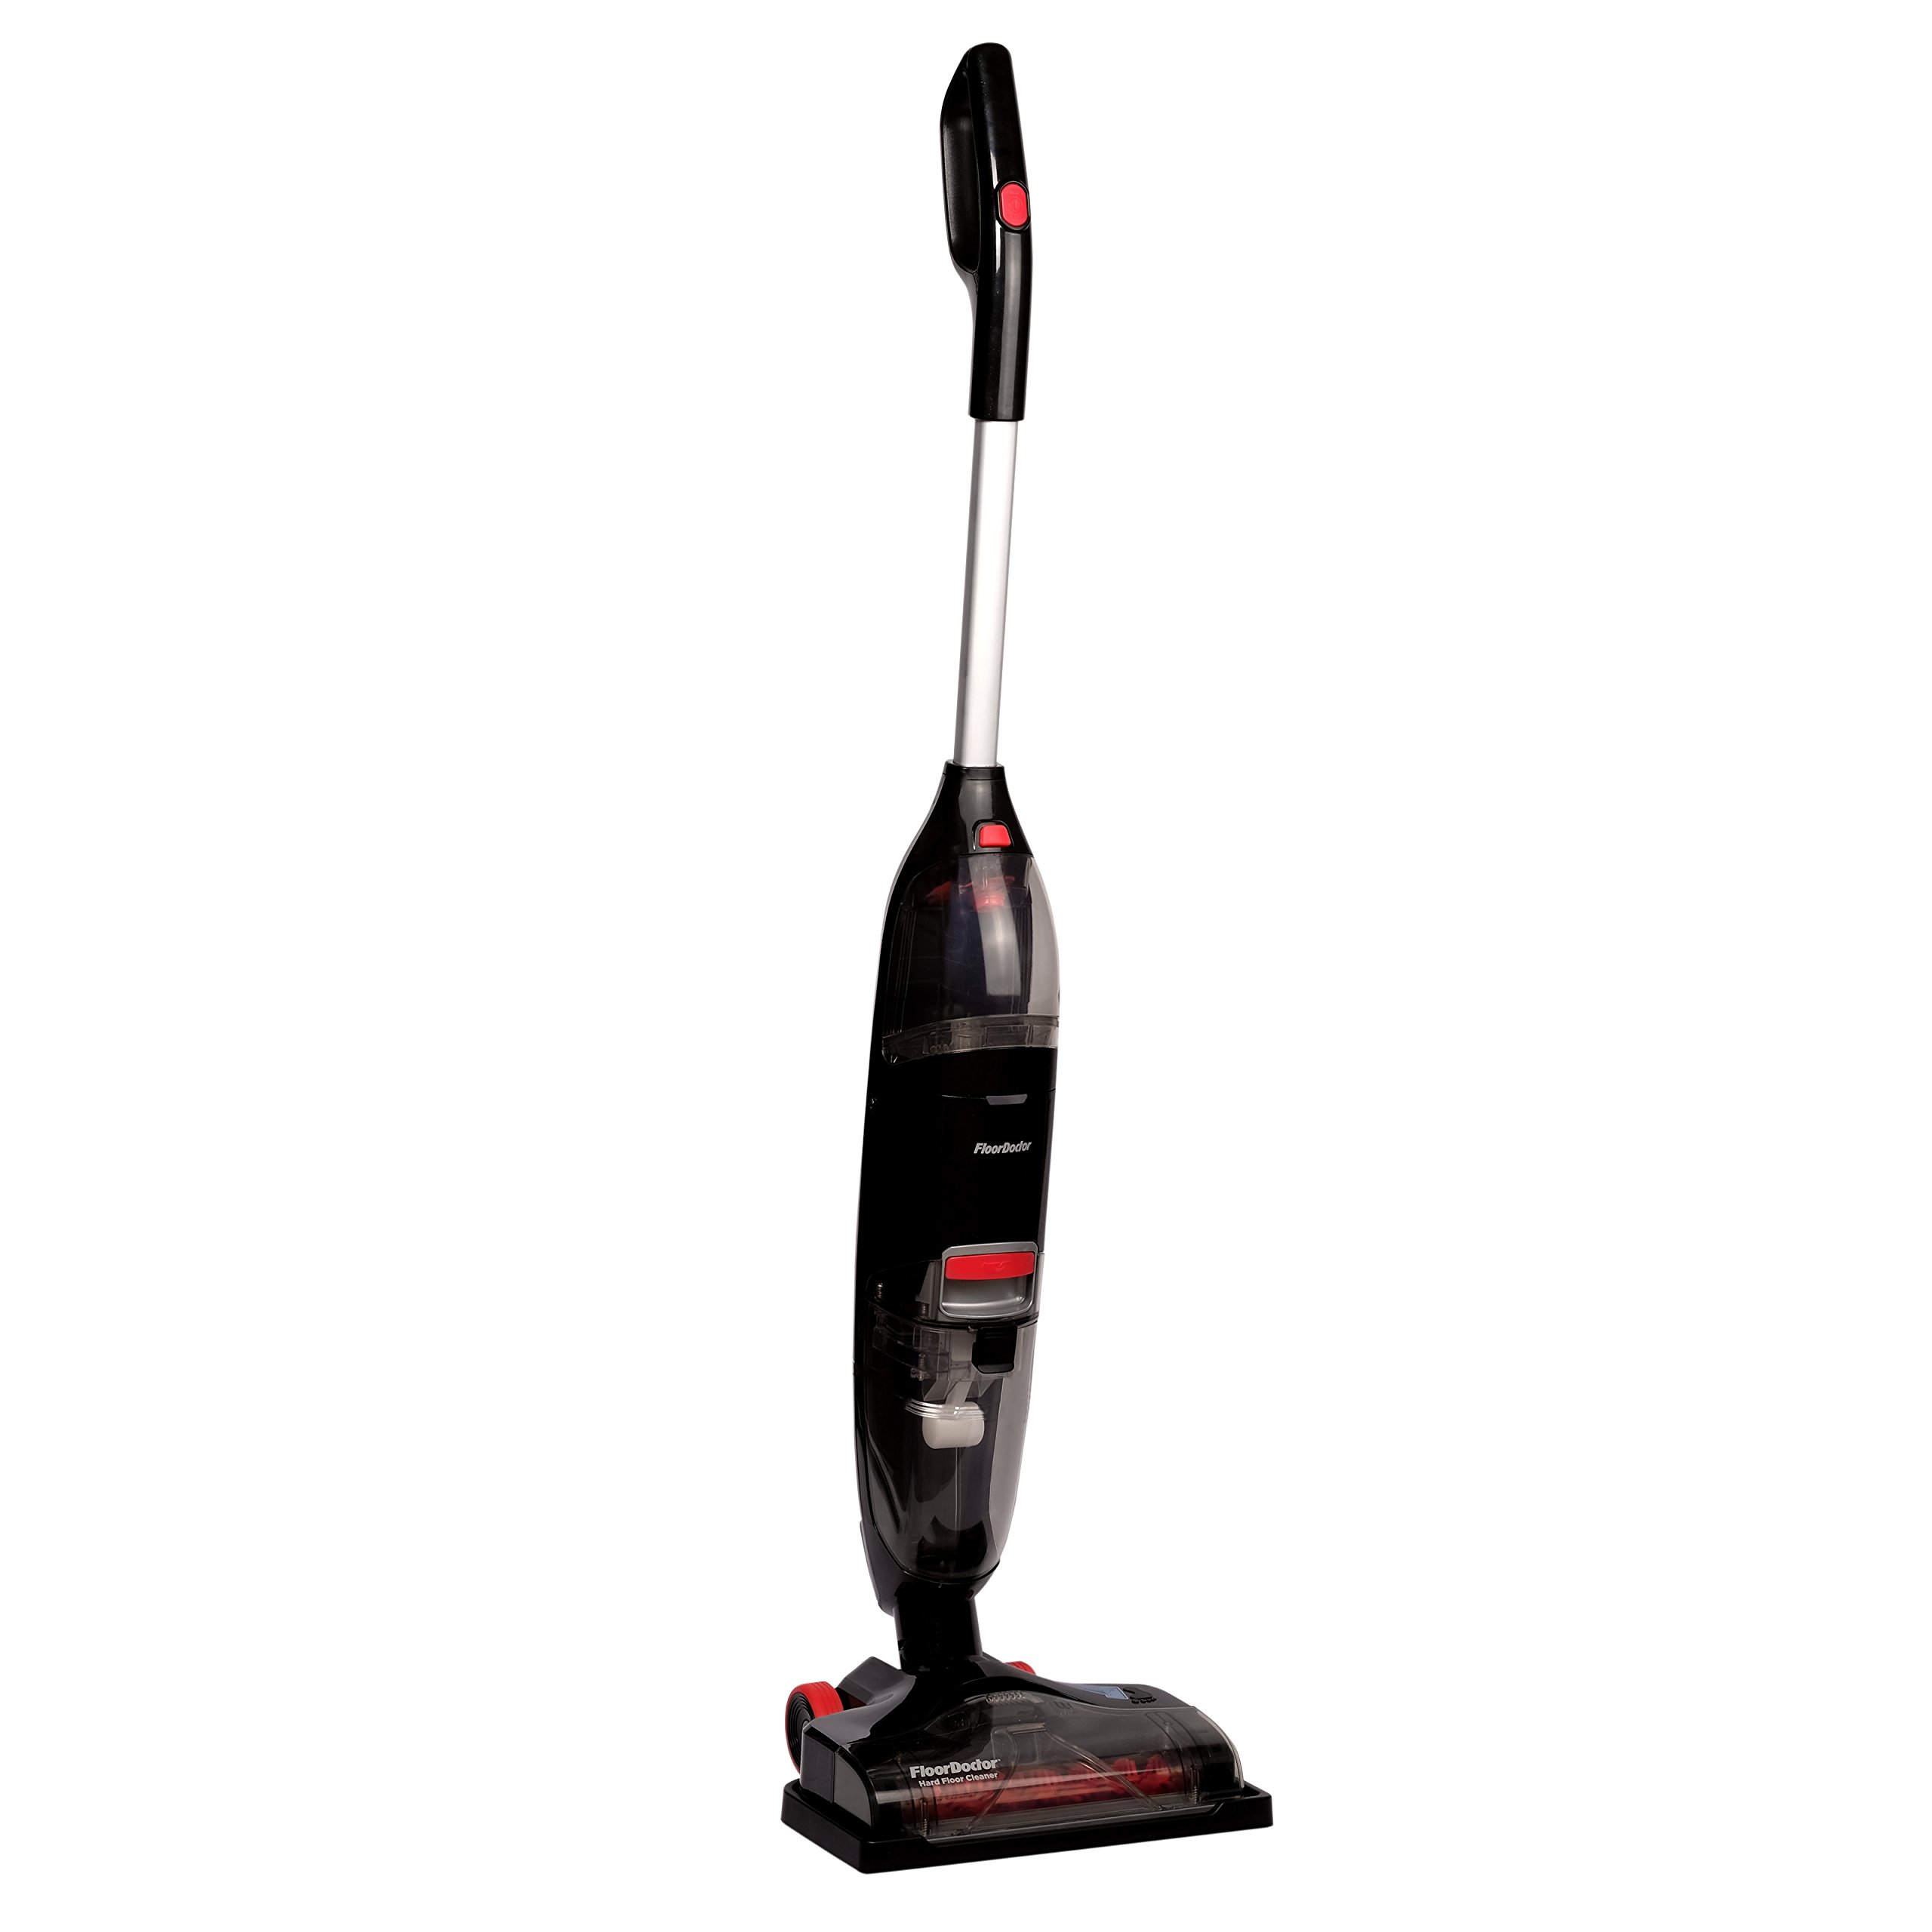 Floor Doctor Cordless Hard Floor Cleaner with Charging Dock, Cleans Spills and Stains and Polishes Hard Floor Surfaces